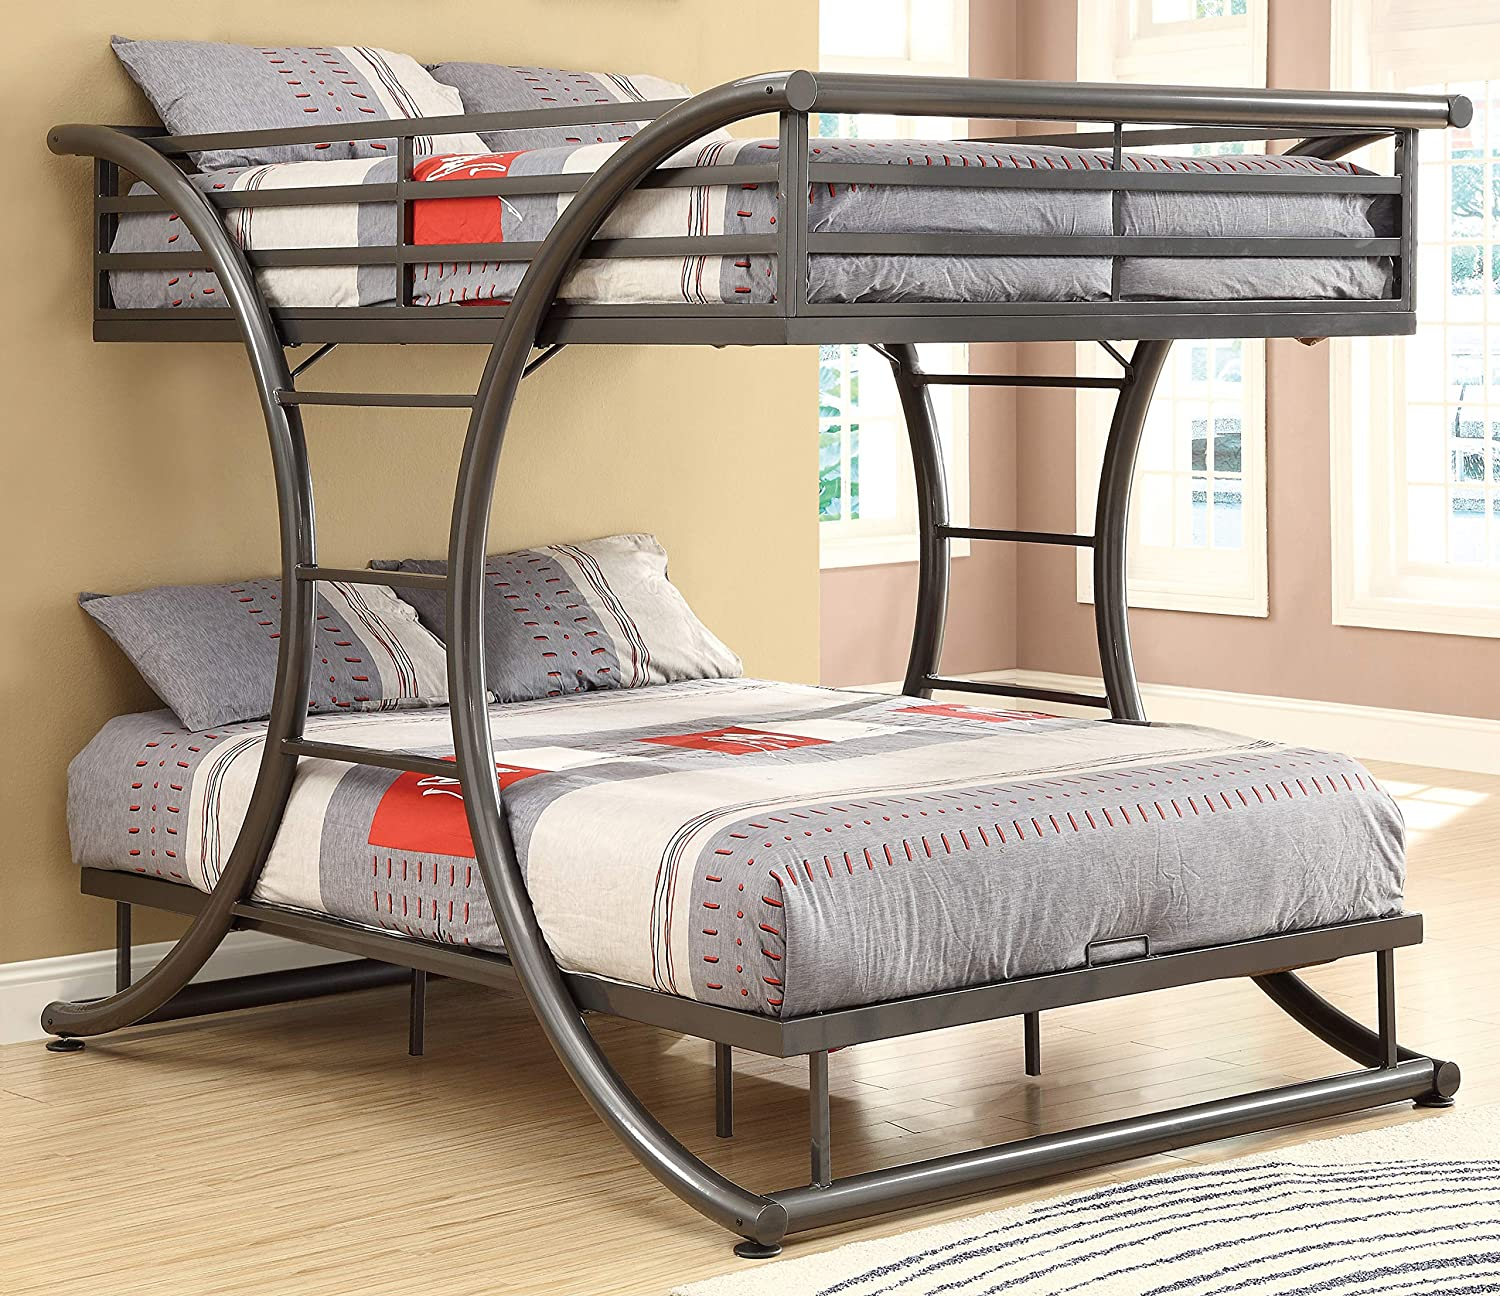 The 10 Best Bunk Beds For Adults Review Studio